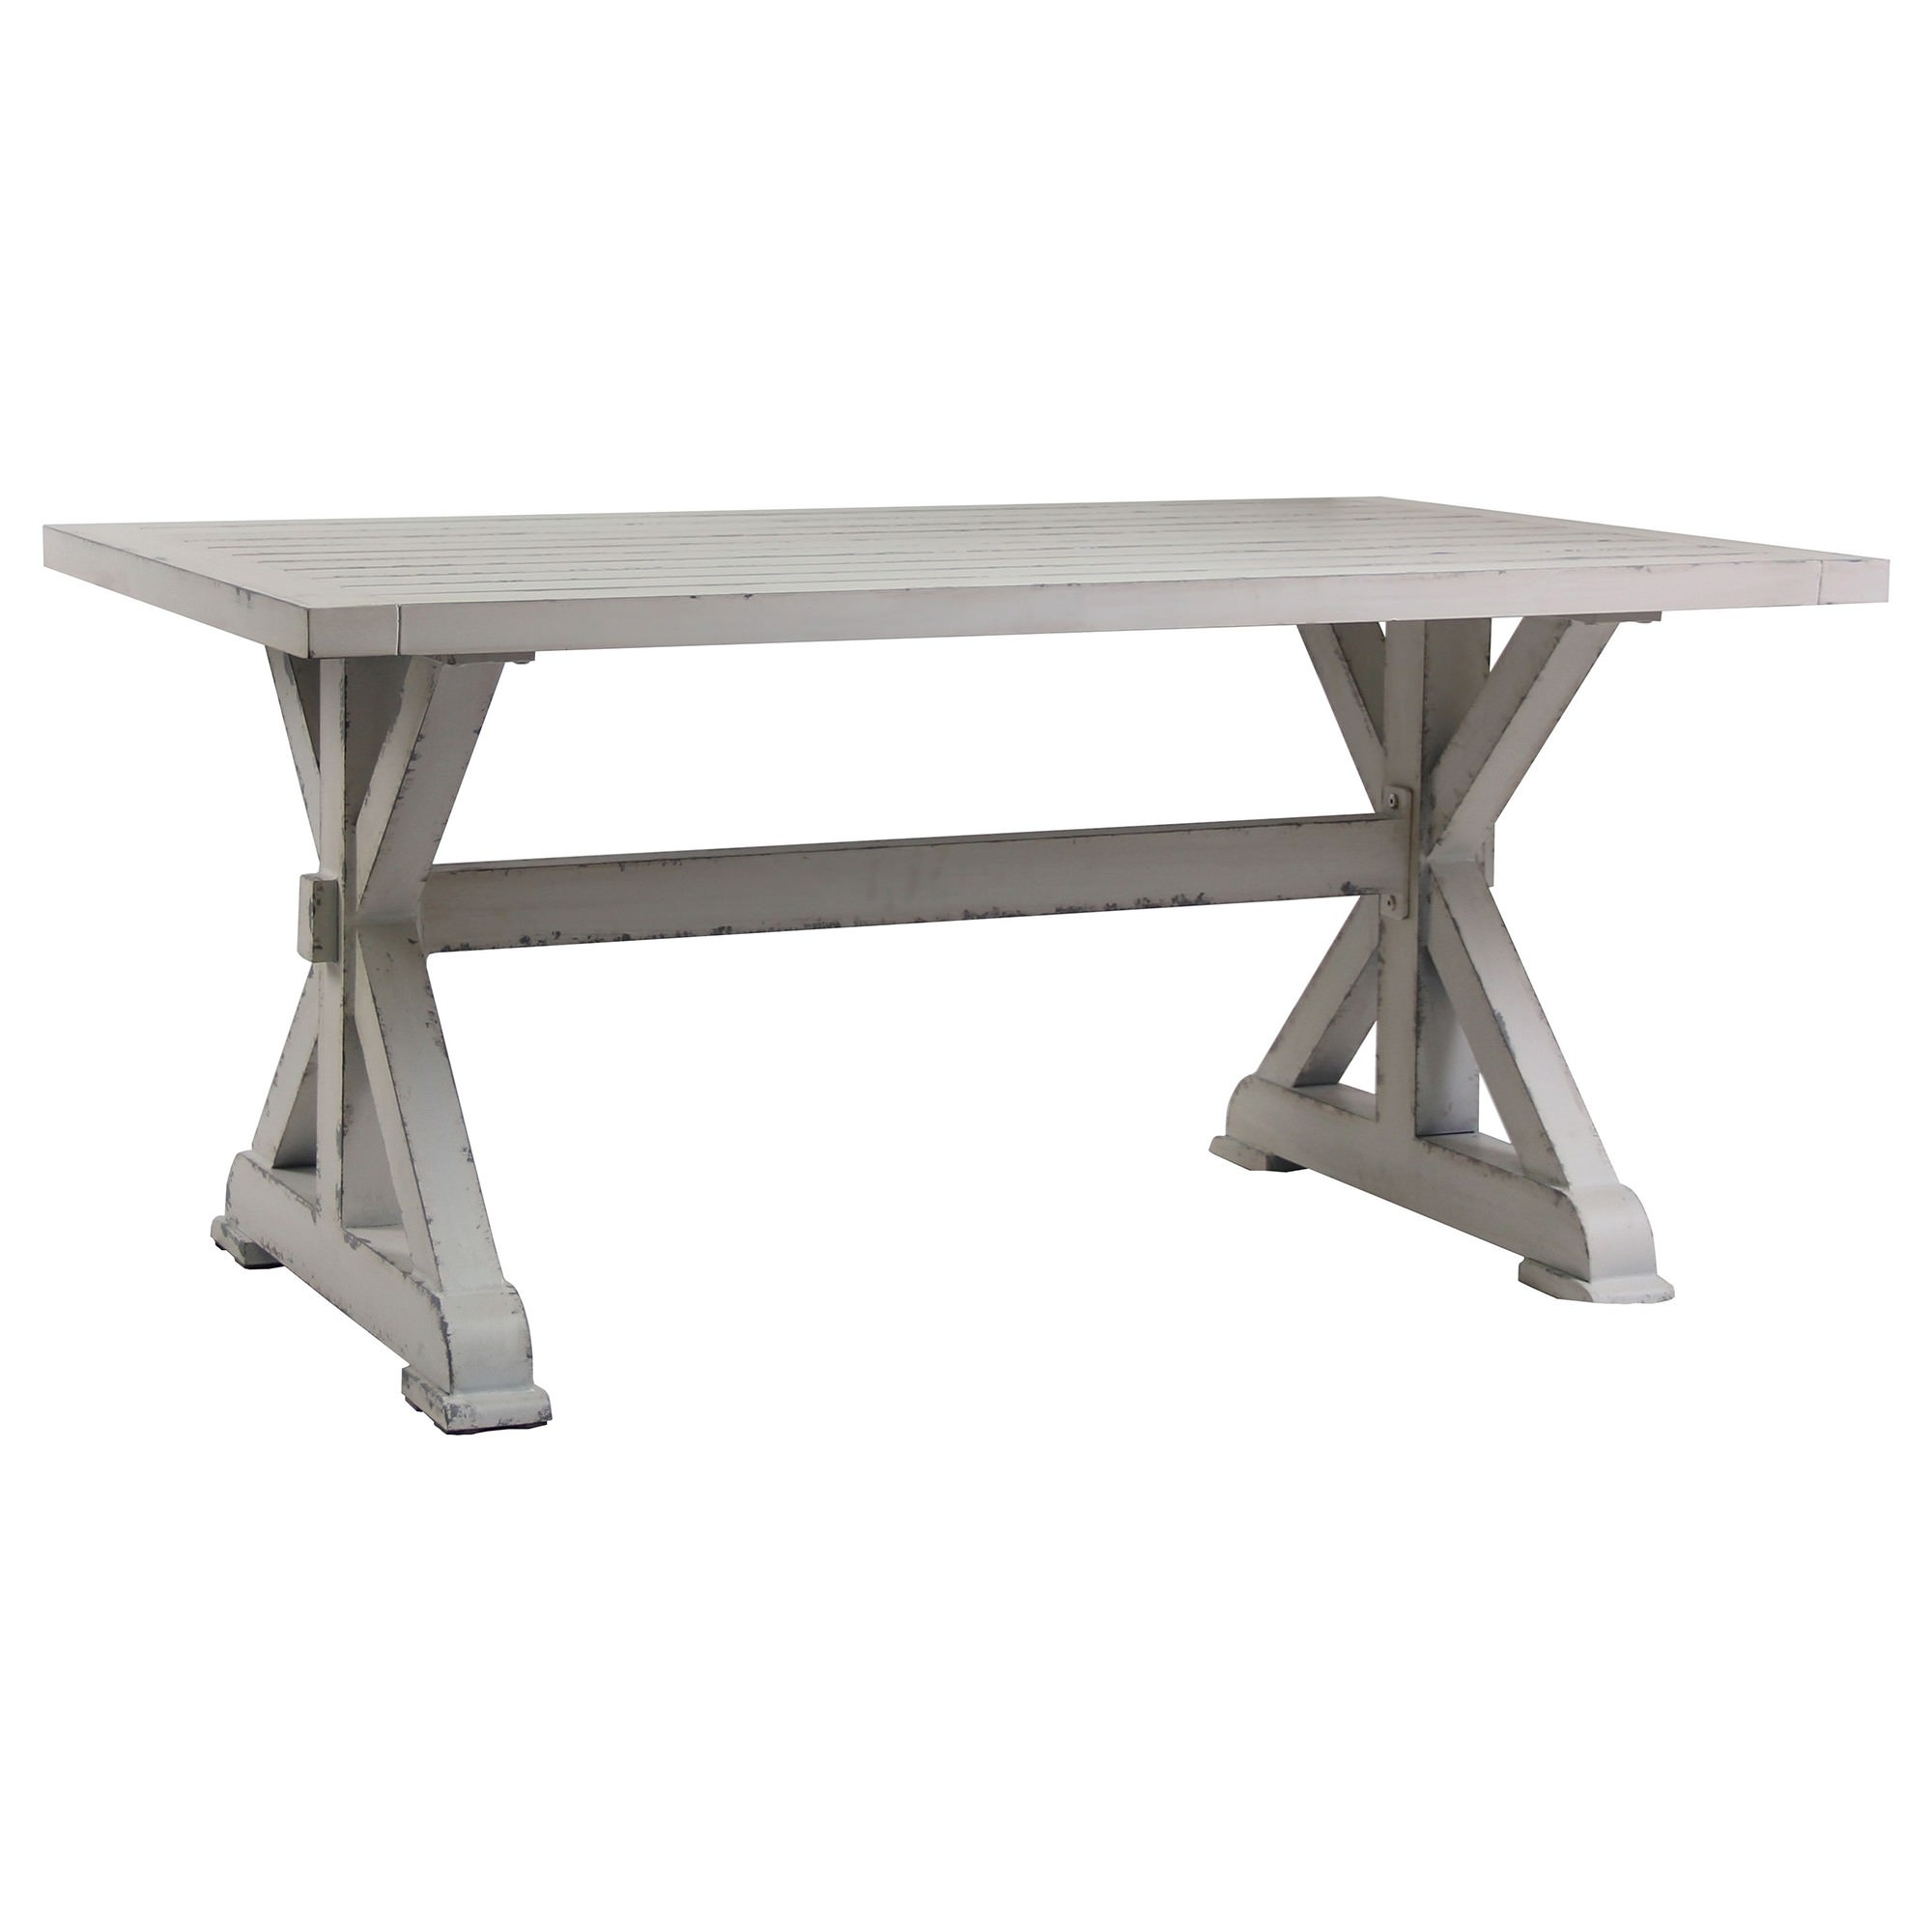 Ochey Commercial Grade Aluminium Indoor / Outdoor Trestle Dining Table, 160cm, Distressed White